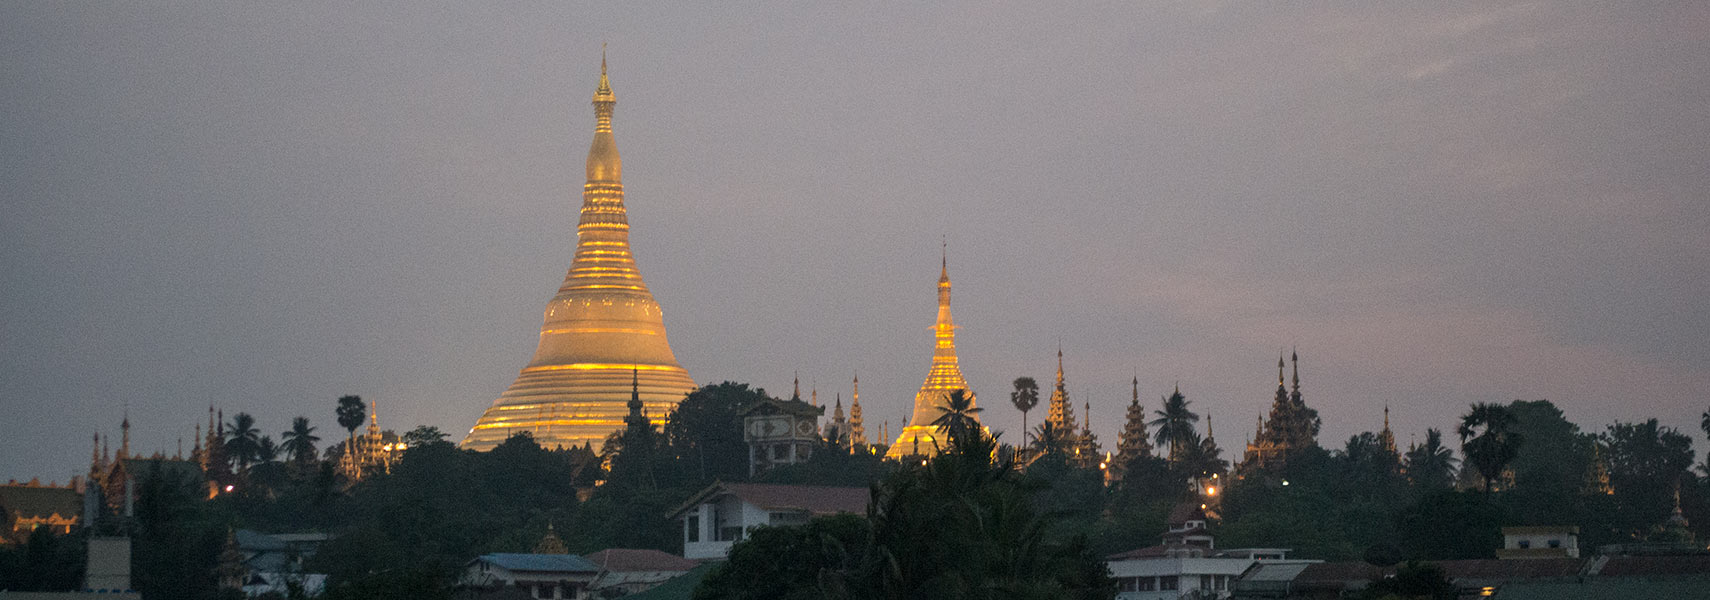 Yangon Shwedagon Pagoda at dawn